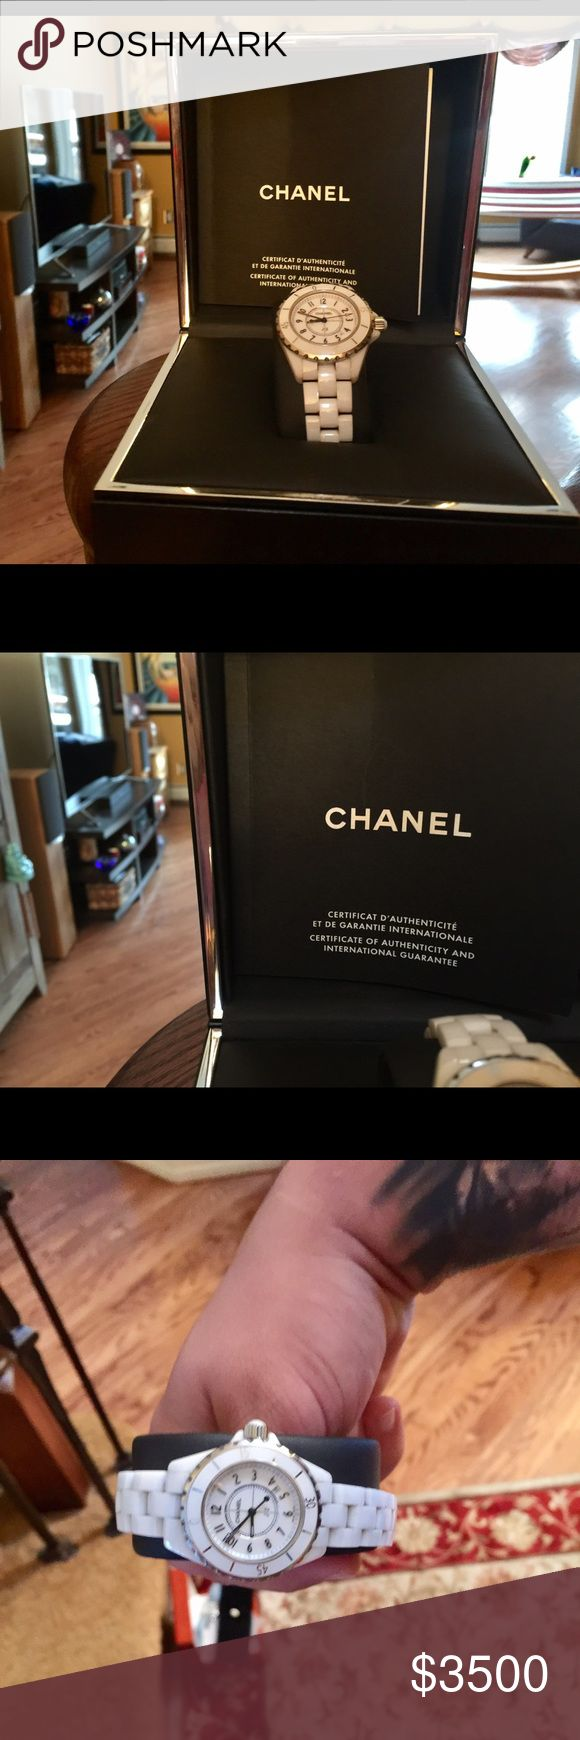 Chanel J12 Watch COMES WITH BOX AND PAPERS+LINKS White Ceramic and Steel Chanel J12 Watch Comes With Original Box, Certificate of Authentication, Mint Condition barely worn.No defects. No signs of Wear. WAS sized down but have the extra links! May need new battery, was recently cleaned. Retails- $5400 My price- $3000. CHANEL Jewelry